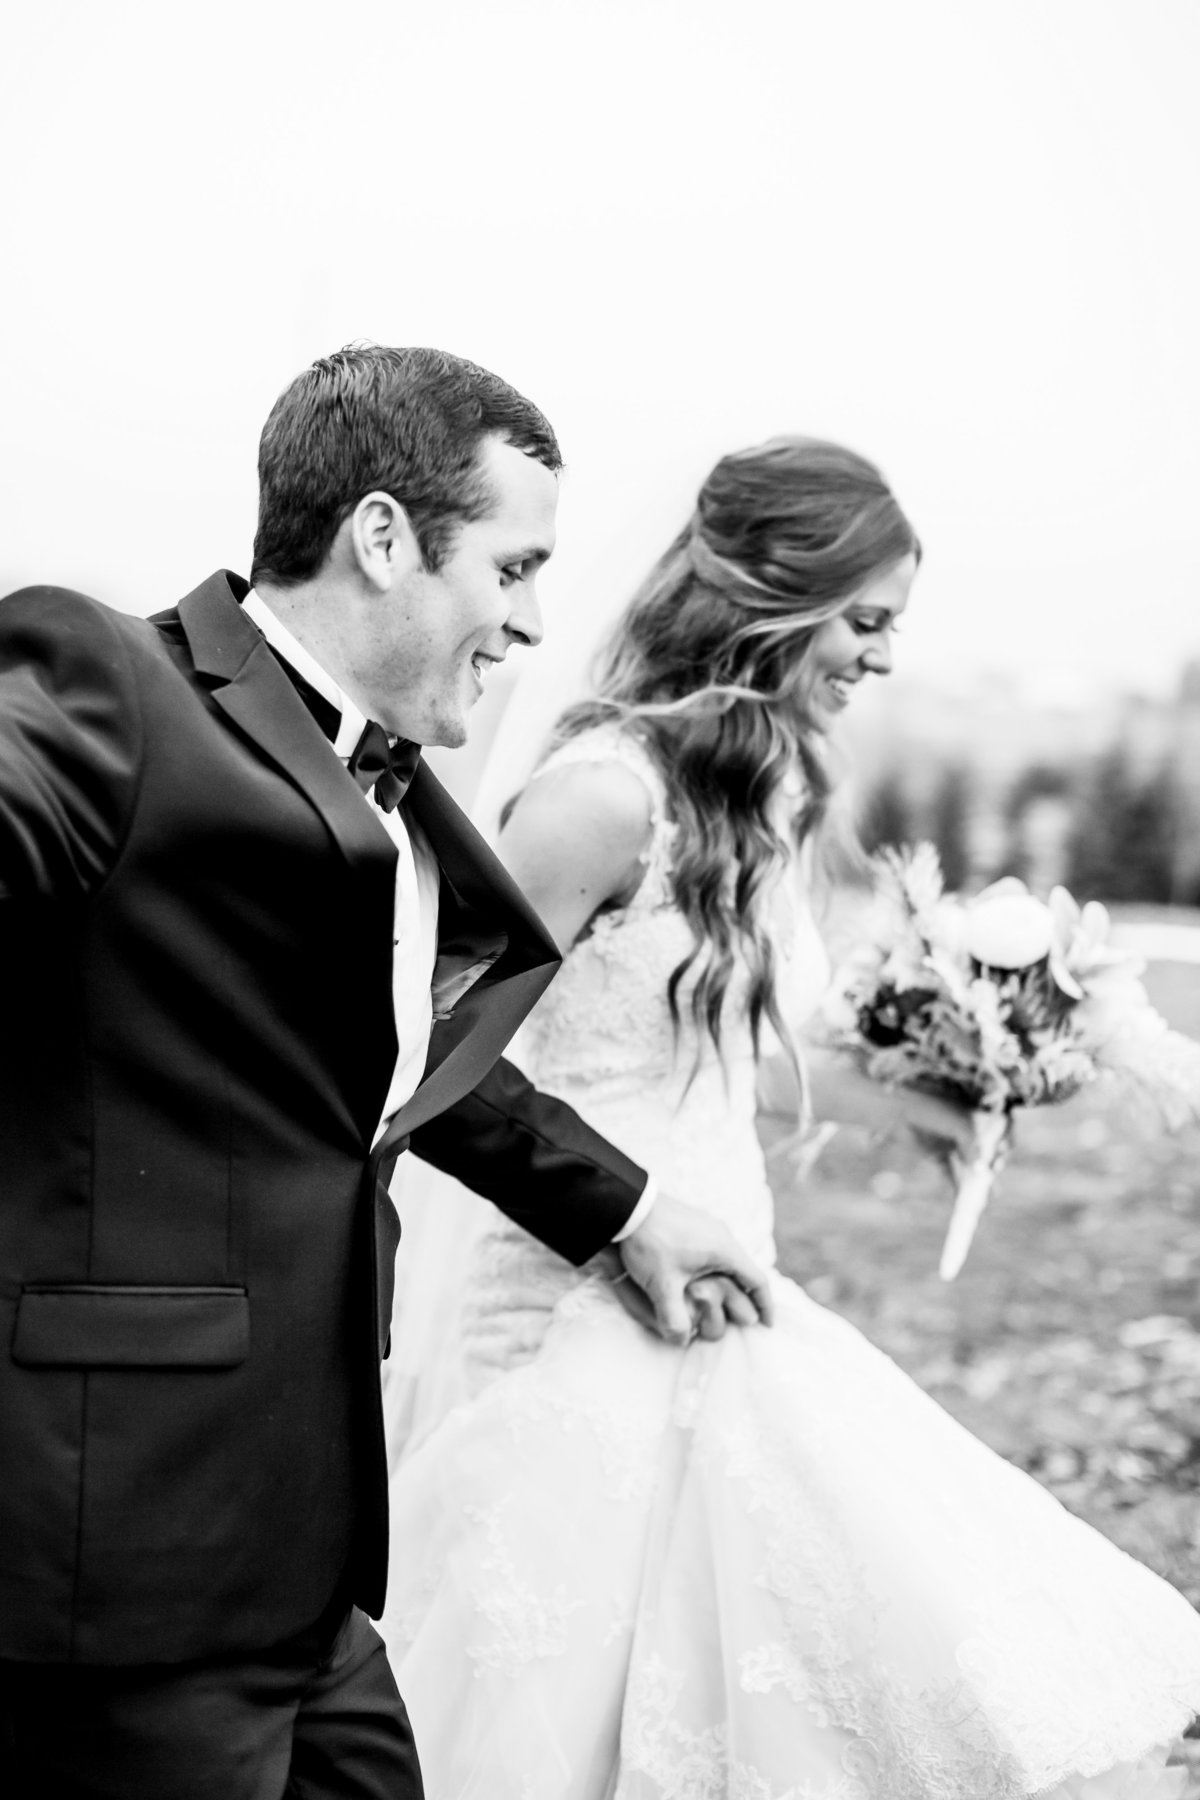 Bride and Groom Running on Wedding Day